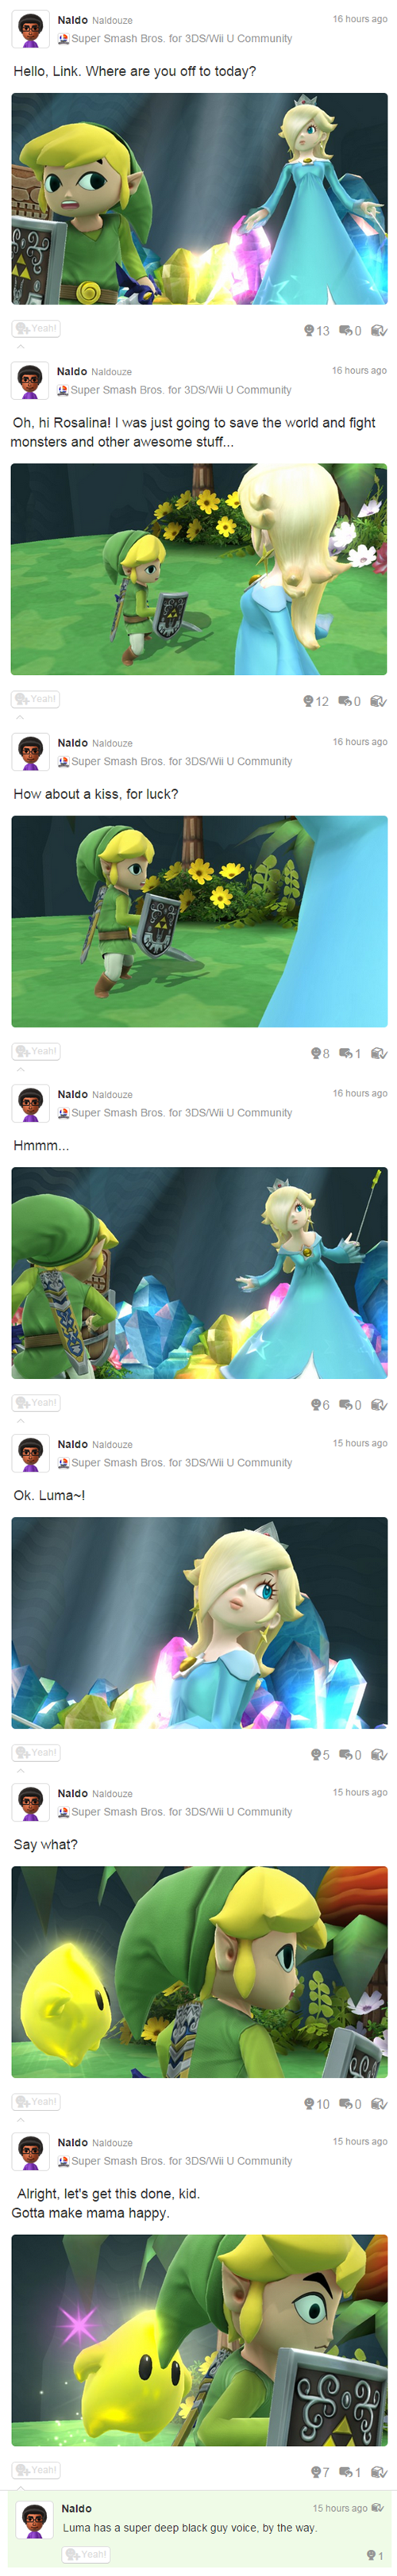 Miiverse,super smash bros,luma,rosalina,video games